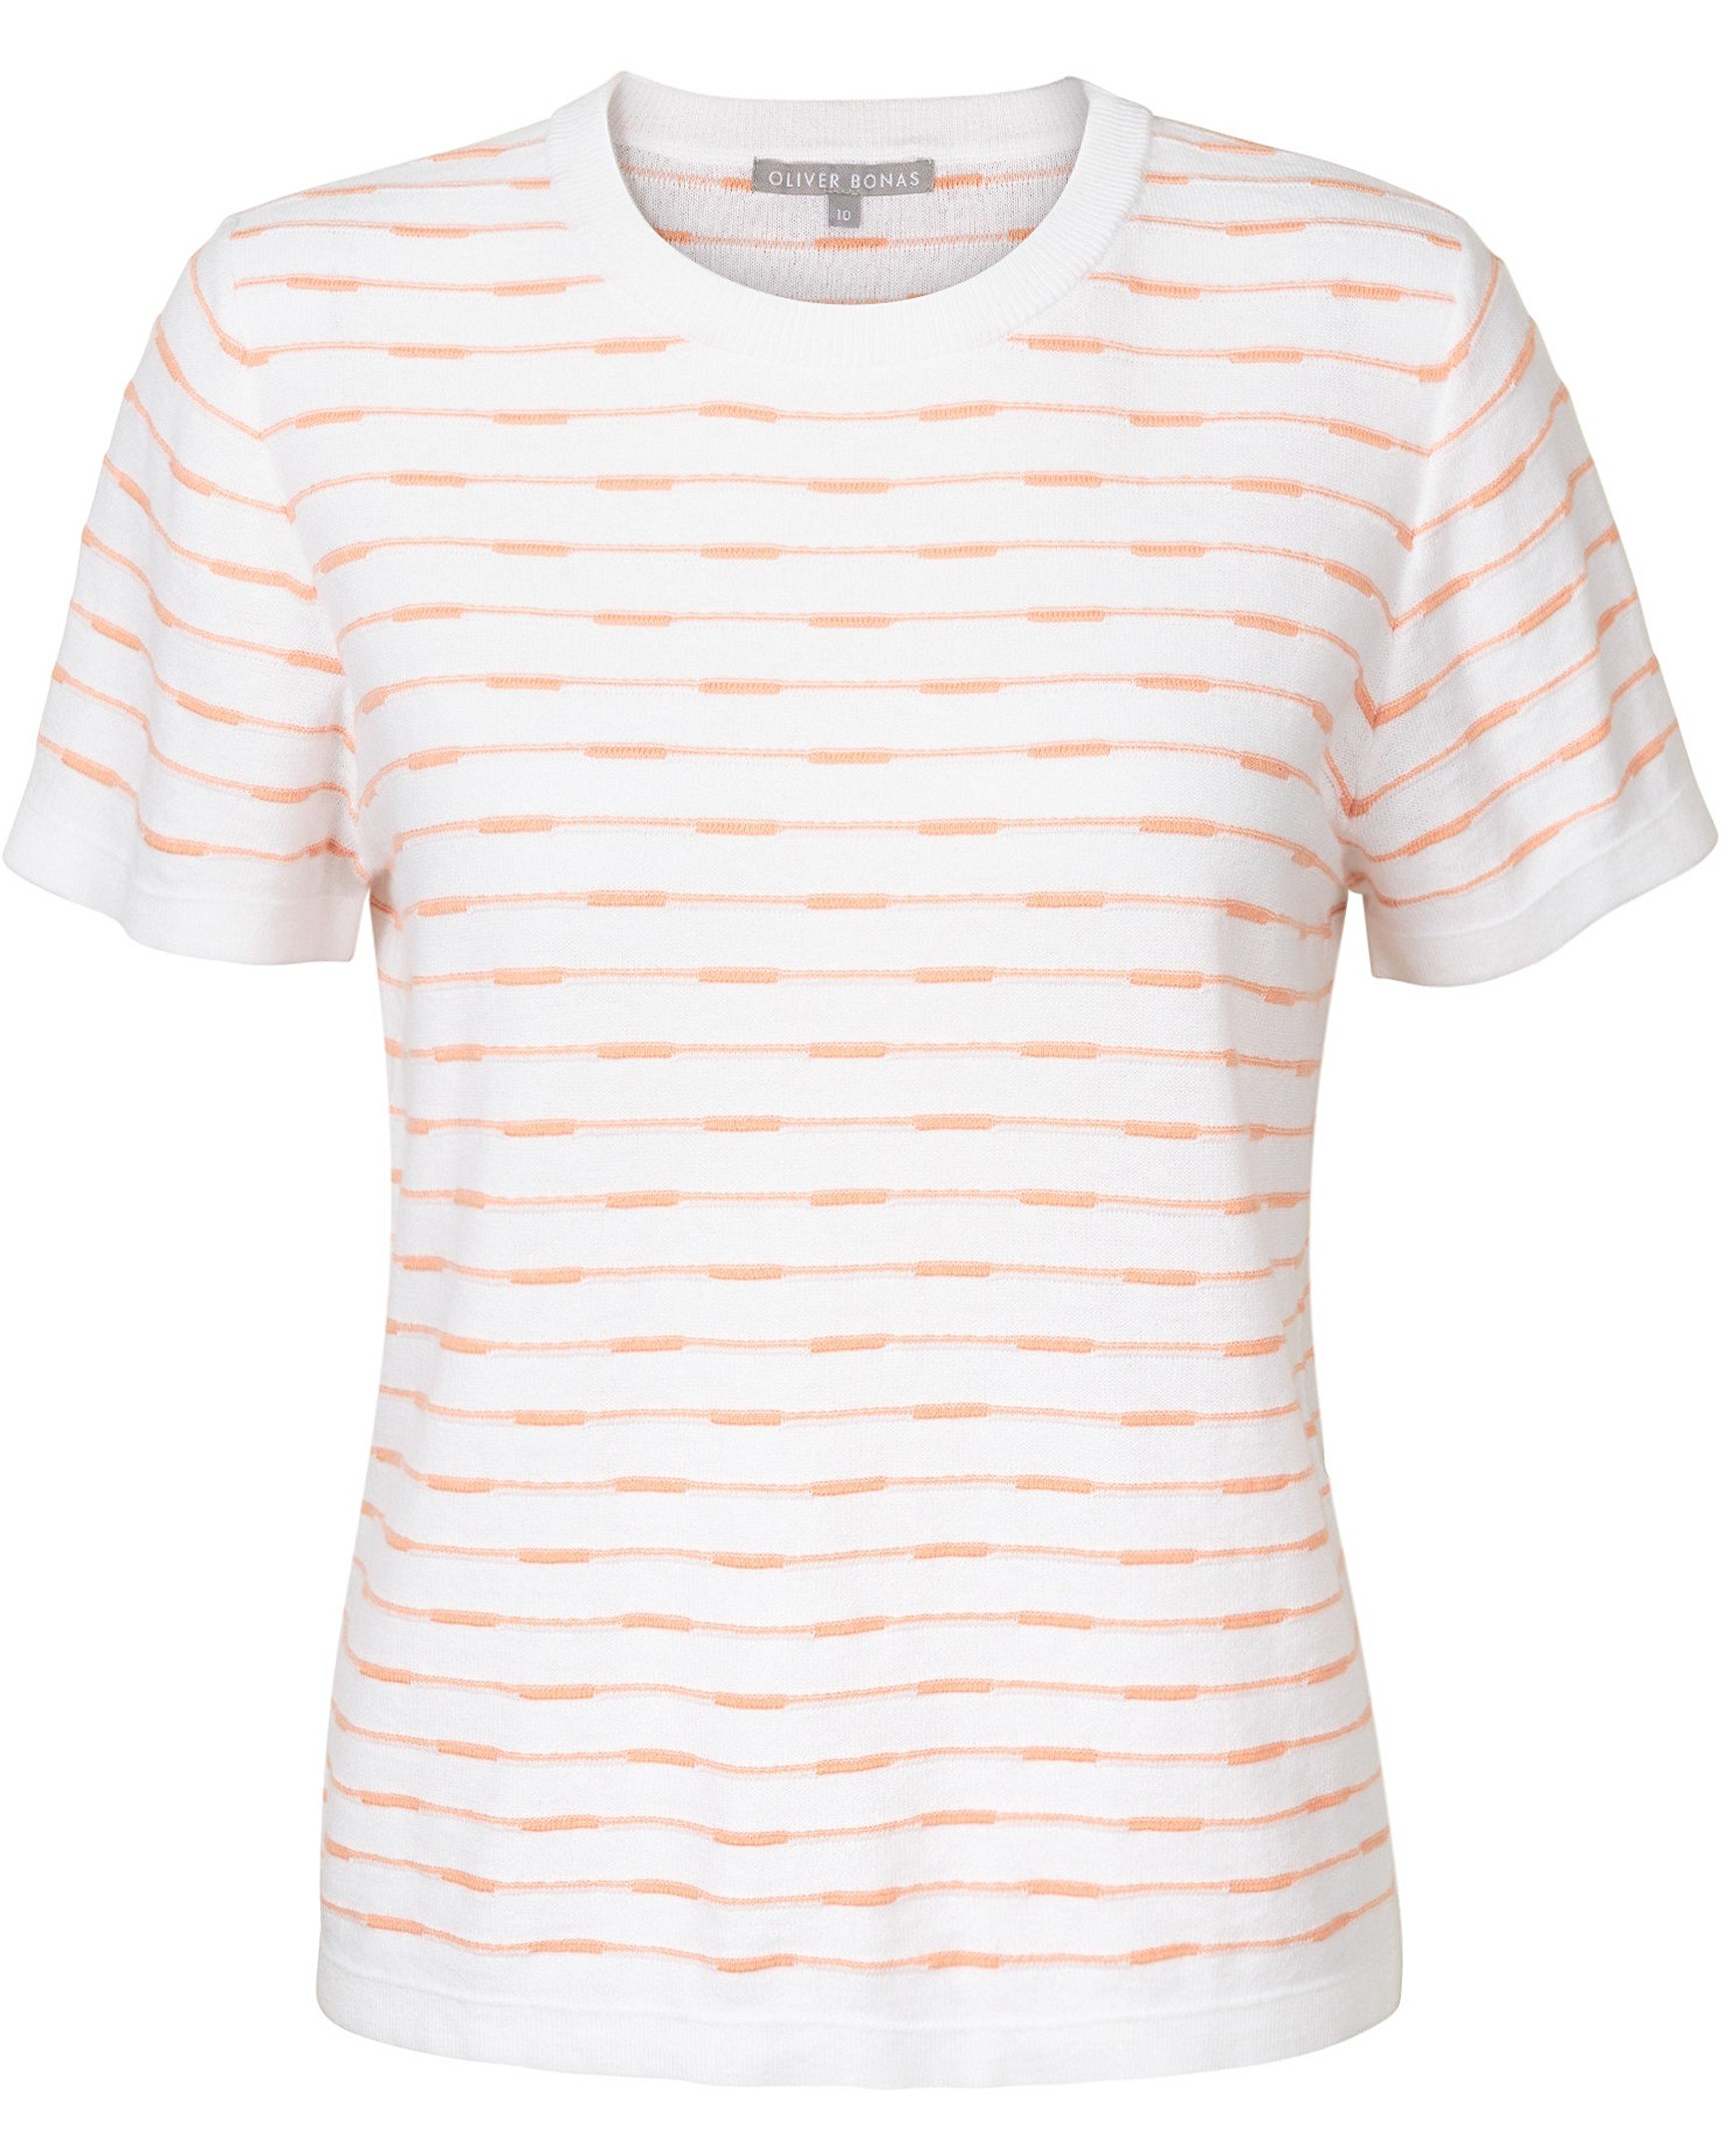 4be0288f2c599d Broken Stripe White & Peach Knitted T-Shirt